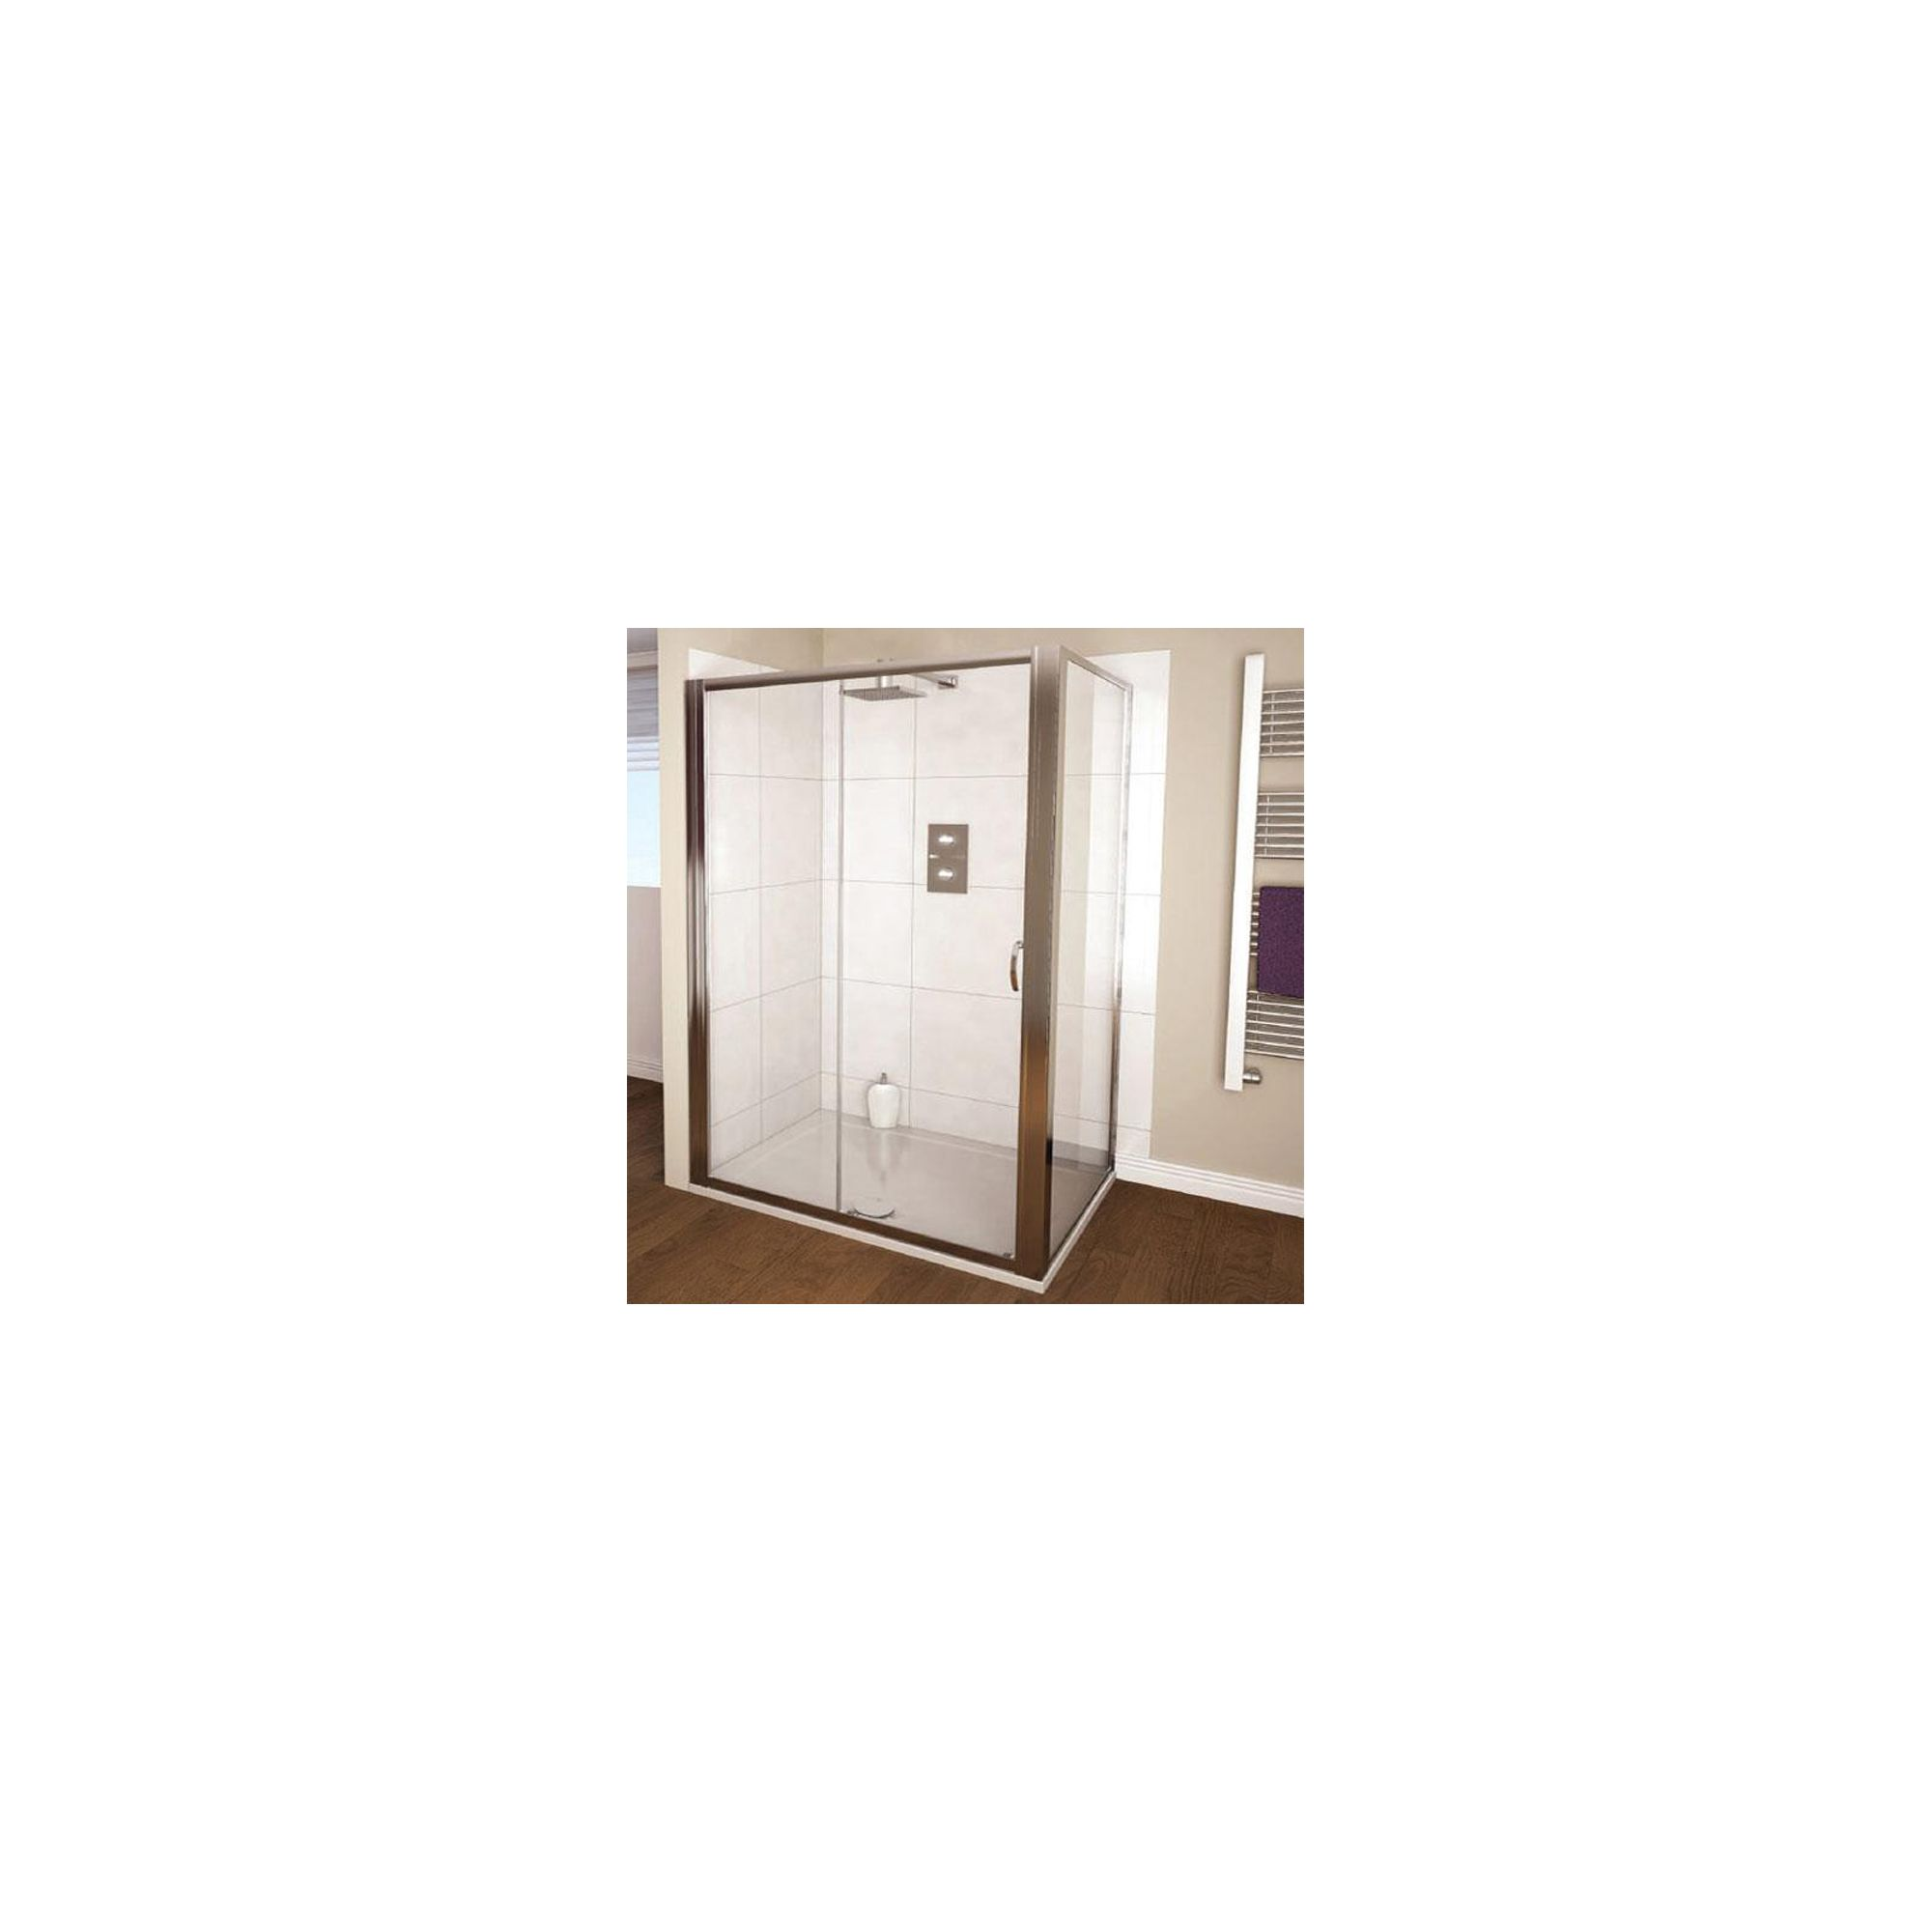 Aqualux AQUA4 Bi-Fold Shower Door, 900mm Wide, Polished Silver Frame, 4mm Glass at Tesco Direct